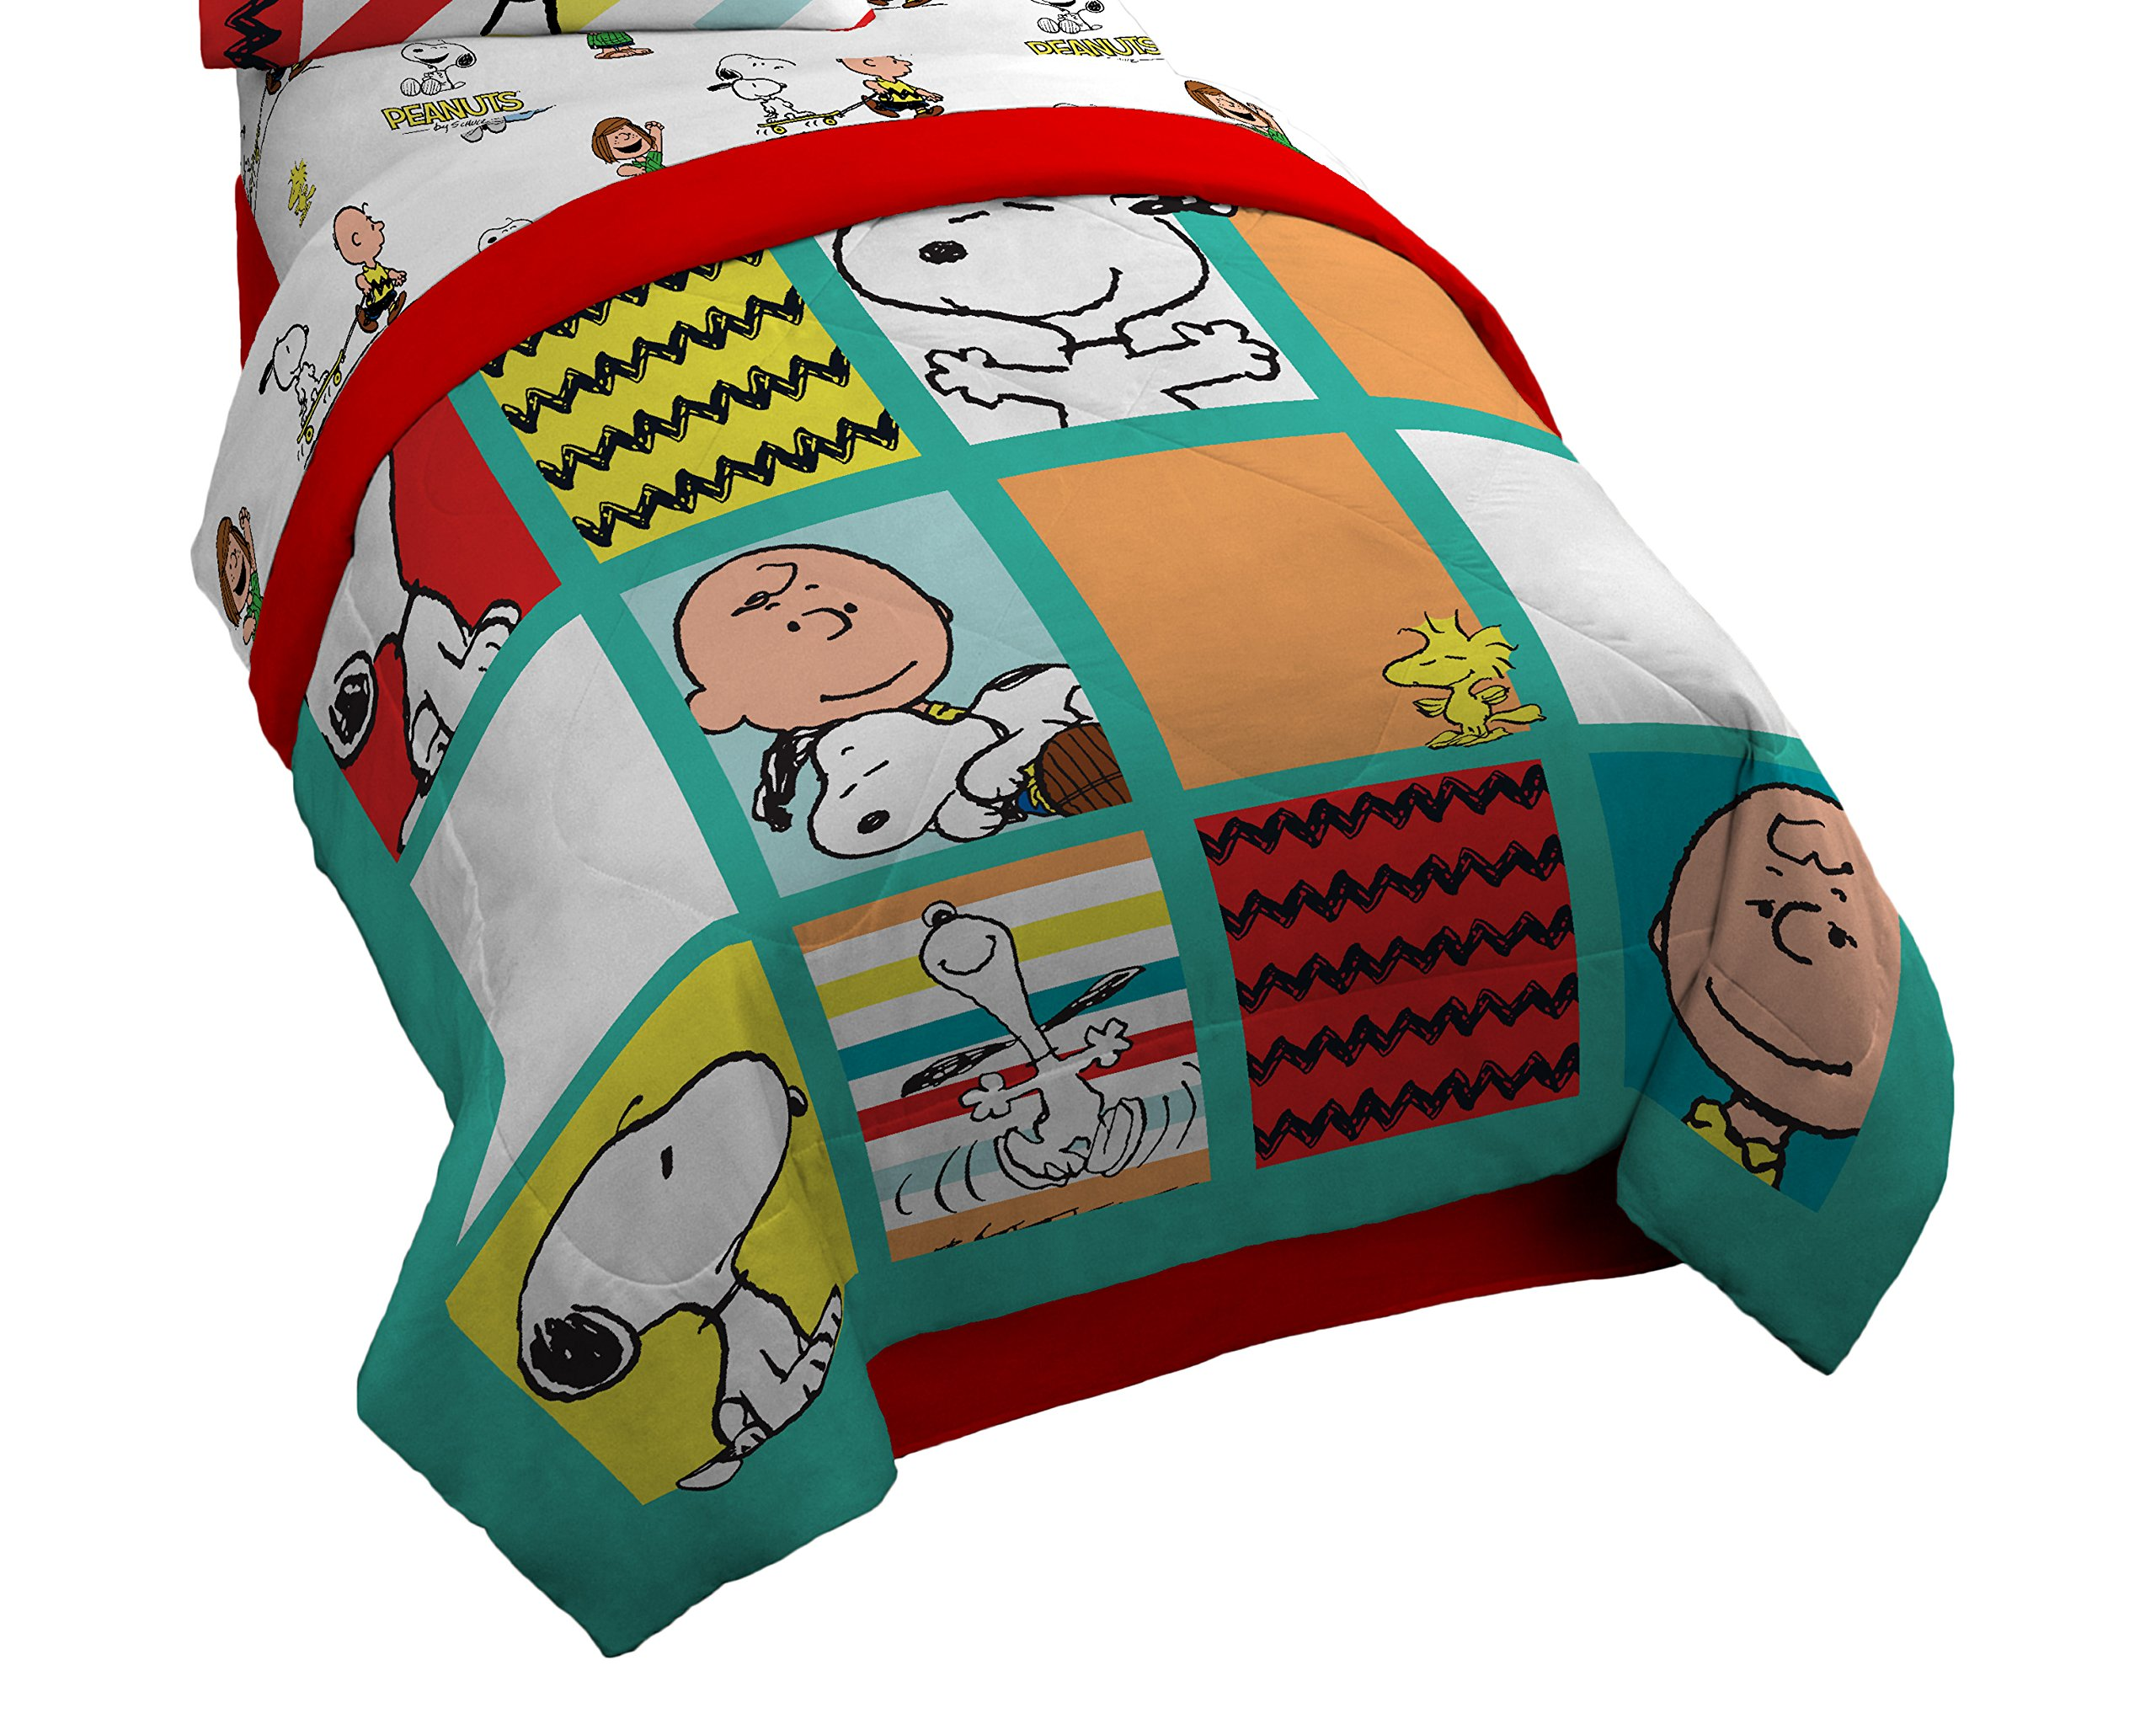 Peanuts Charlie Brown Best Friends Twin/Full Comforter - Super Soft Kids Reversible Bedding features Charlie Brown and Snoopy - Fade Resistant Polyester Microfiber Fill (Official Peanuts Product)